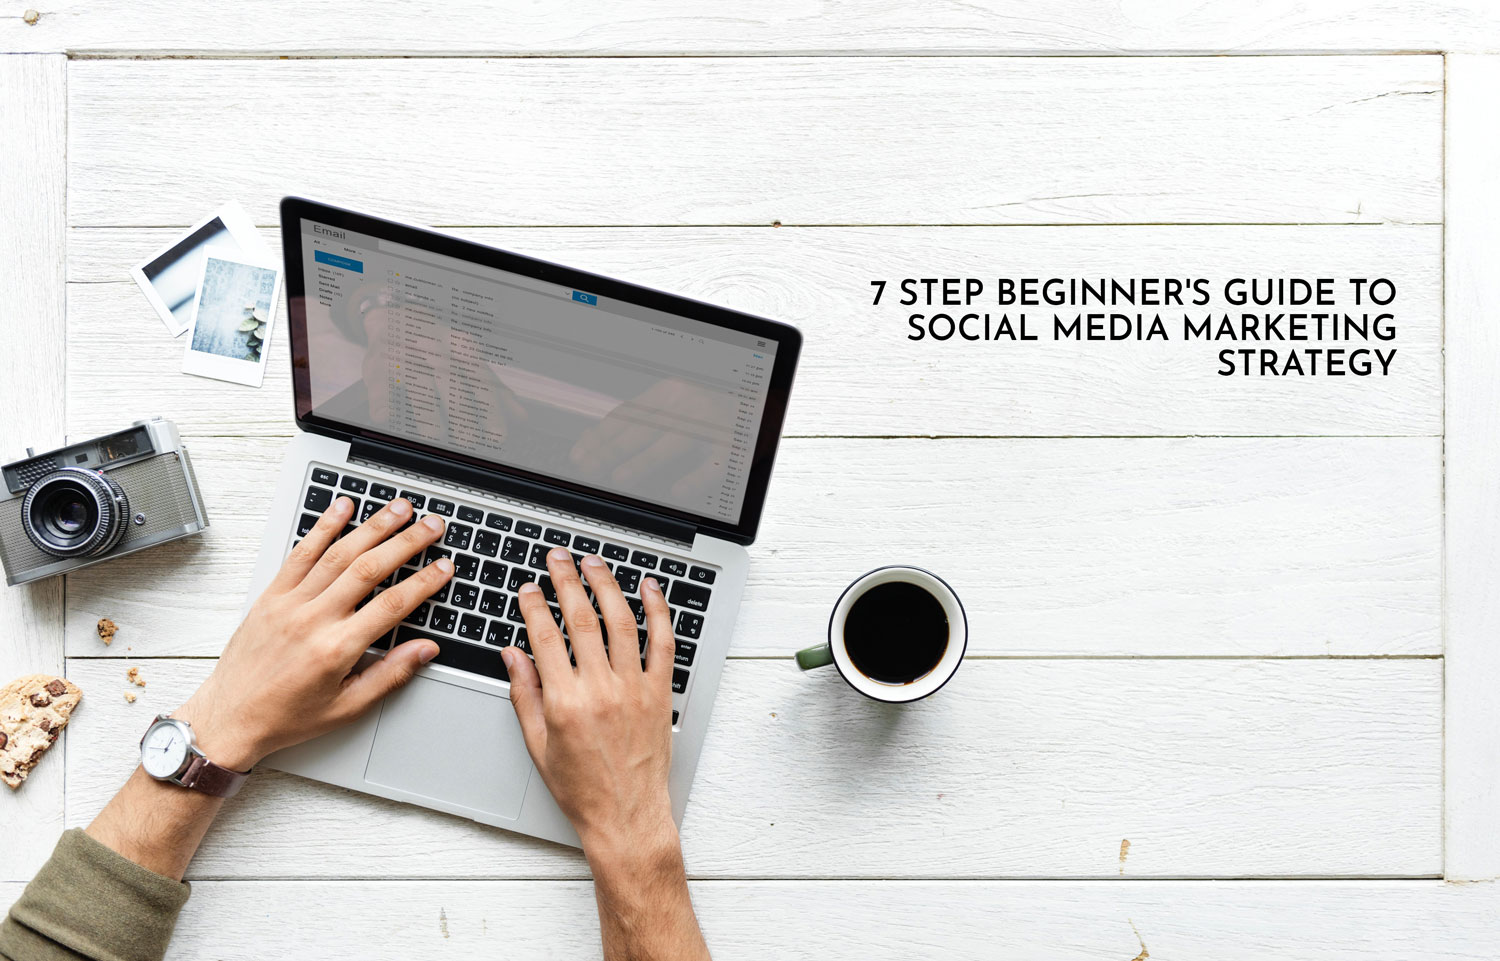 7 Step Beginner's Guide to Social Media Marketing Strategy